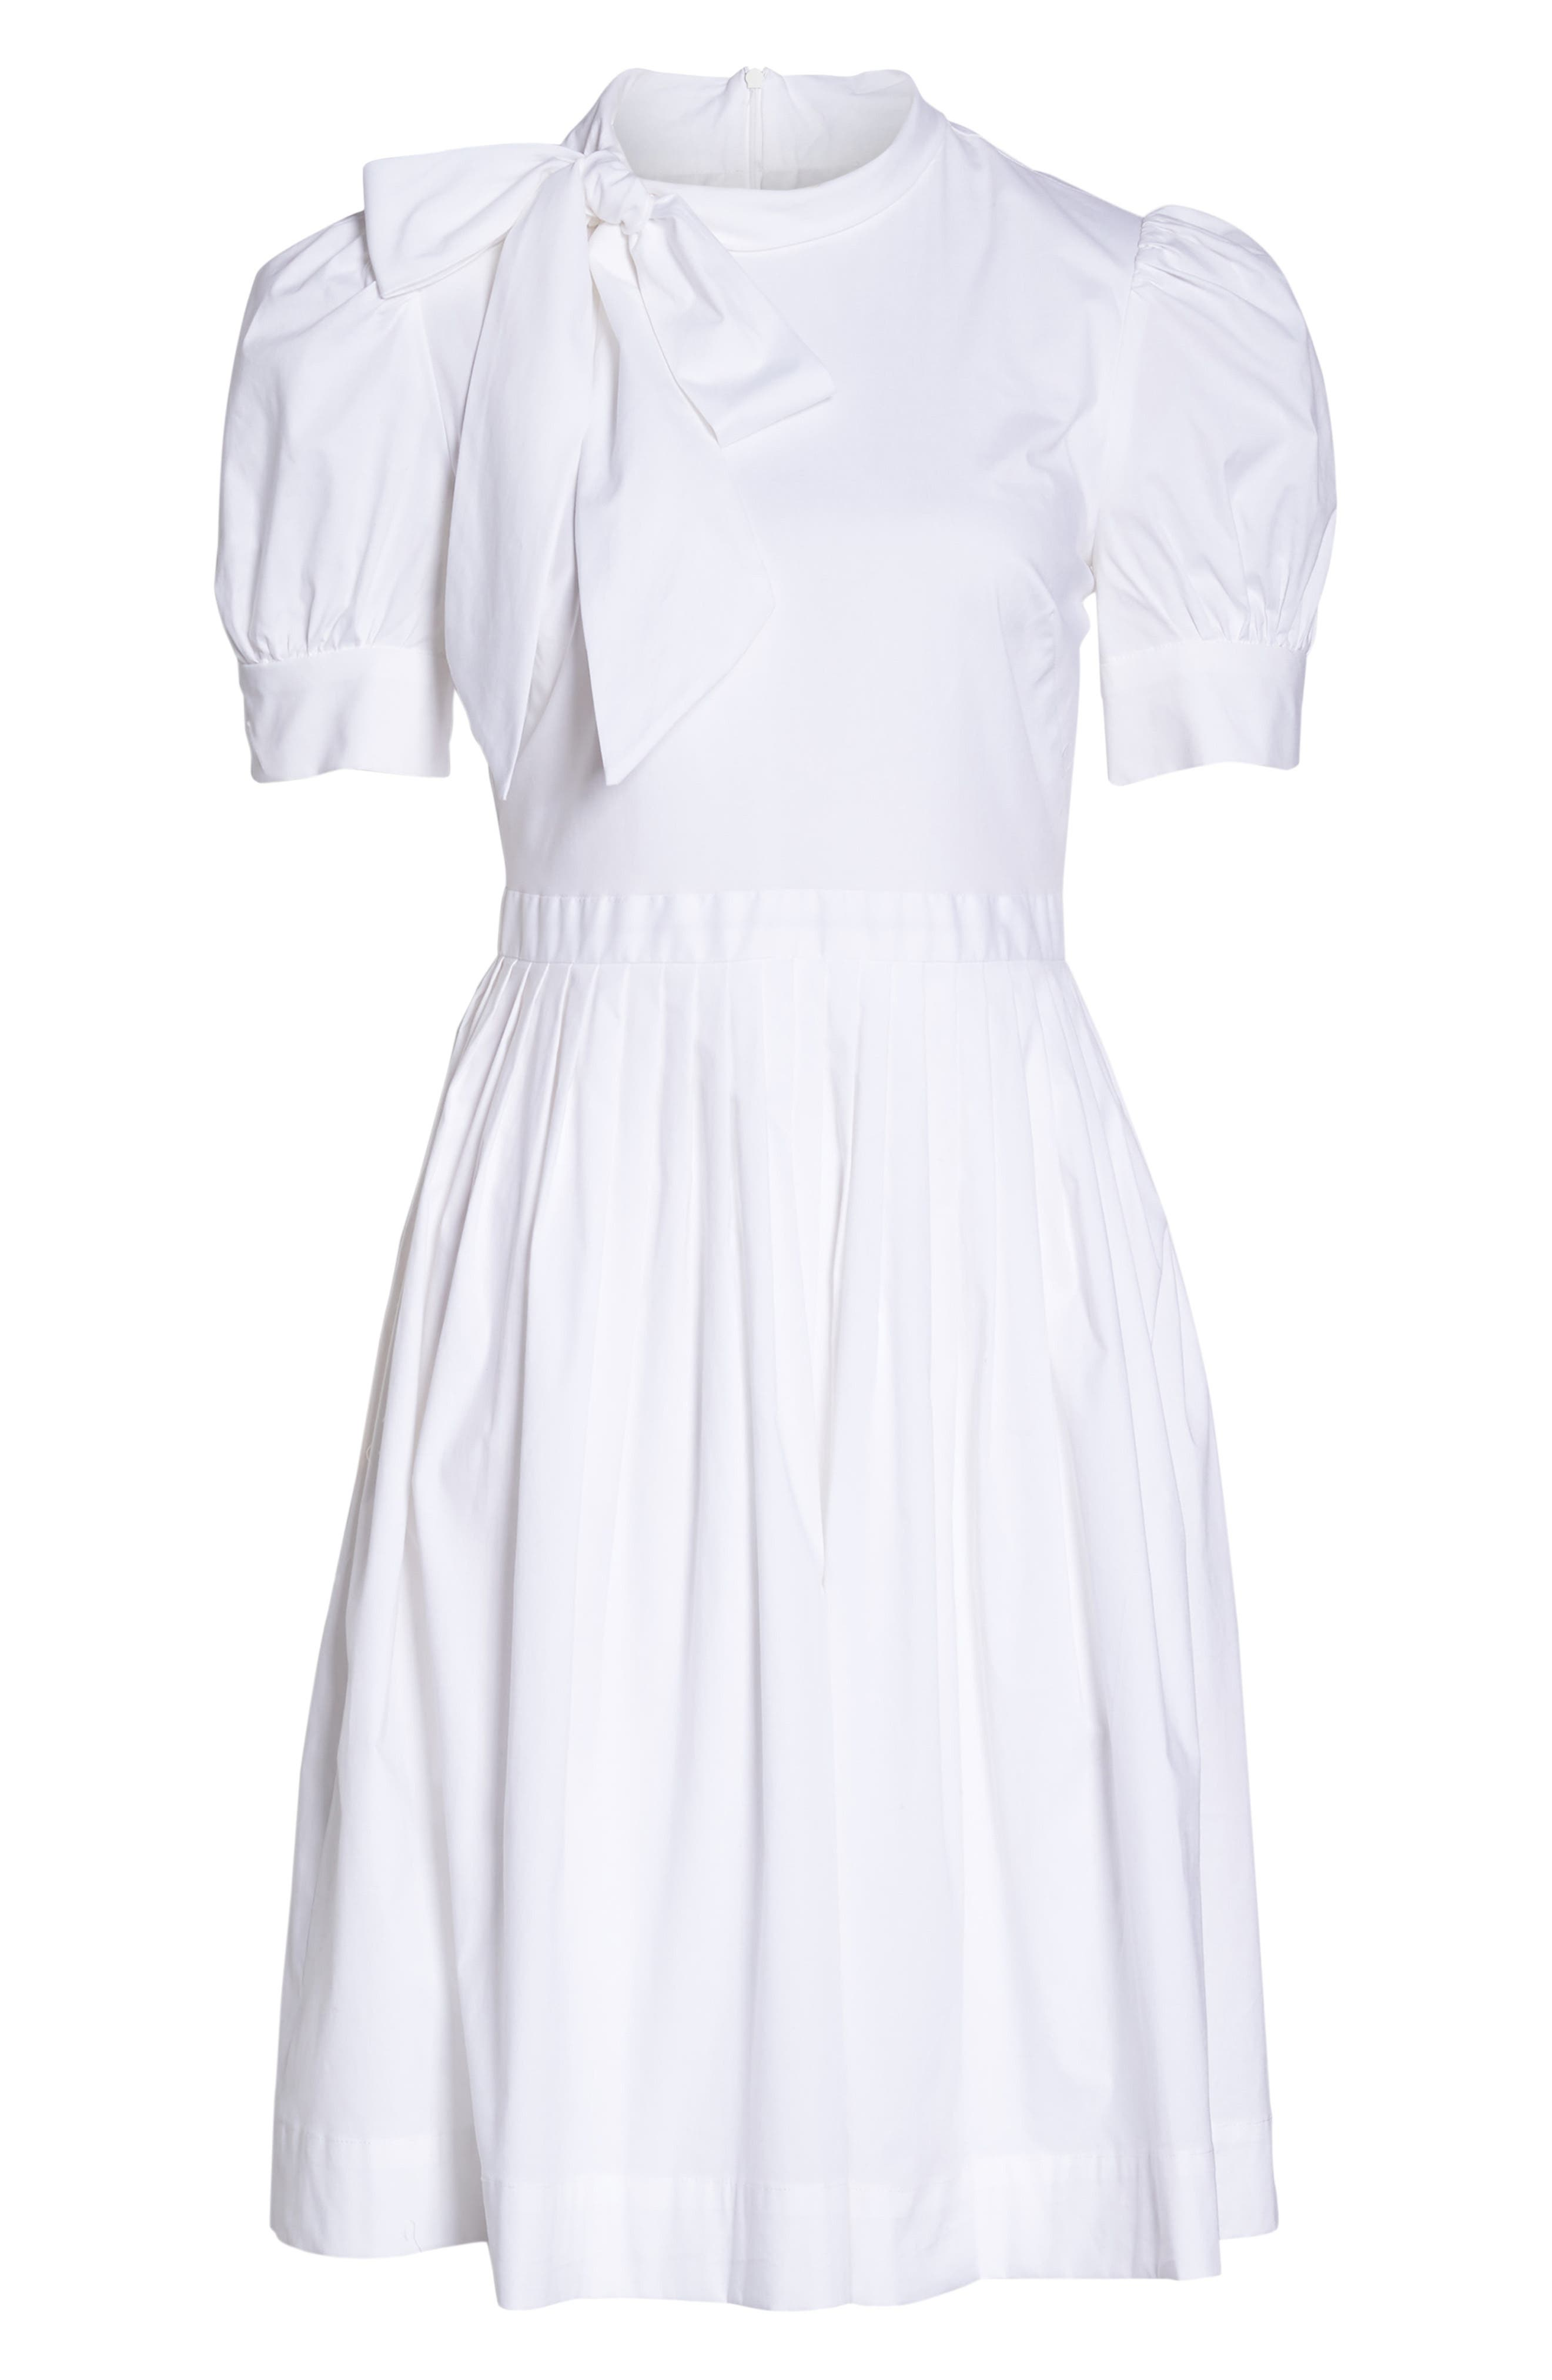 Hanna Puff Sleeve Cotton Poplin Dress,                             Alternate thumbnail 7, color,                             101